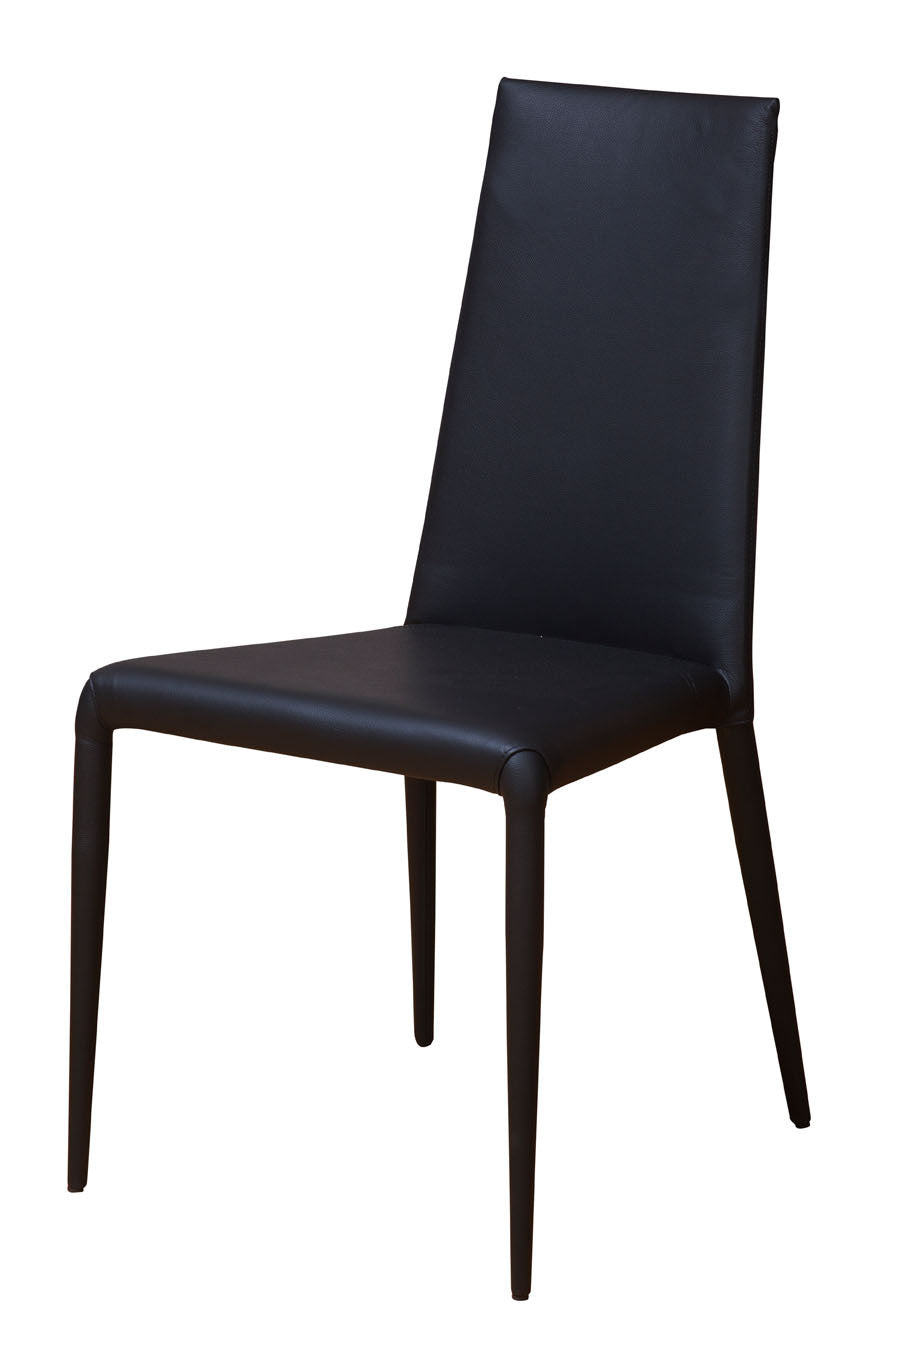 Fully Upholstered Black Leather Dining Chairs With Steel Base Perth WA